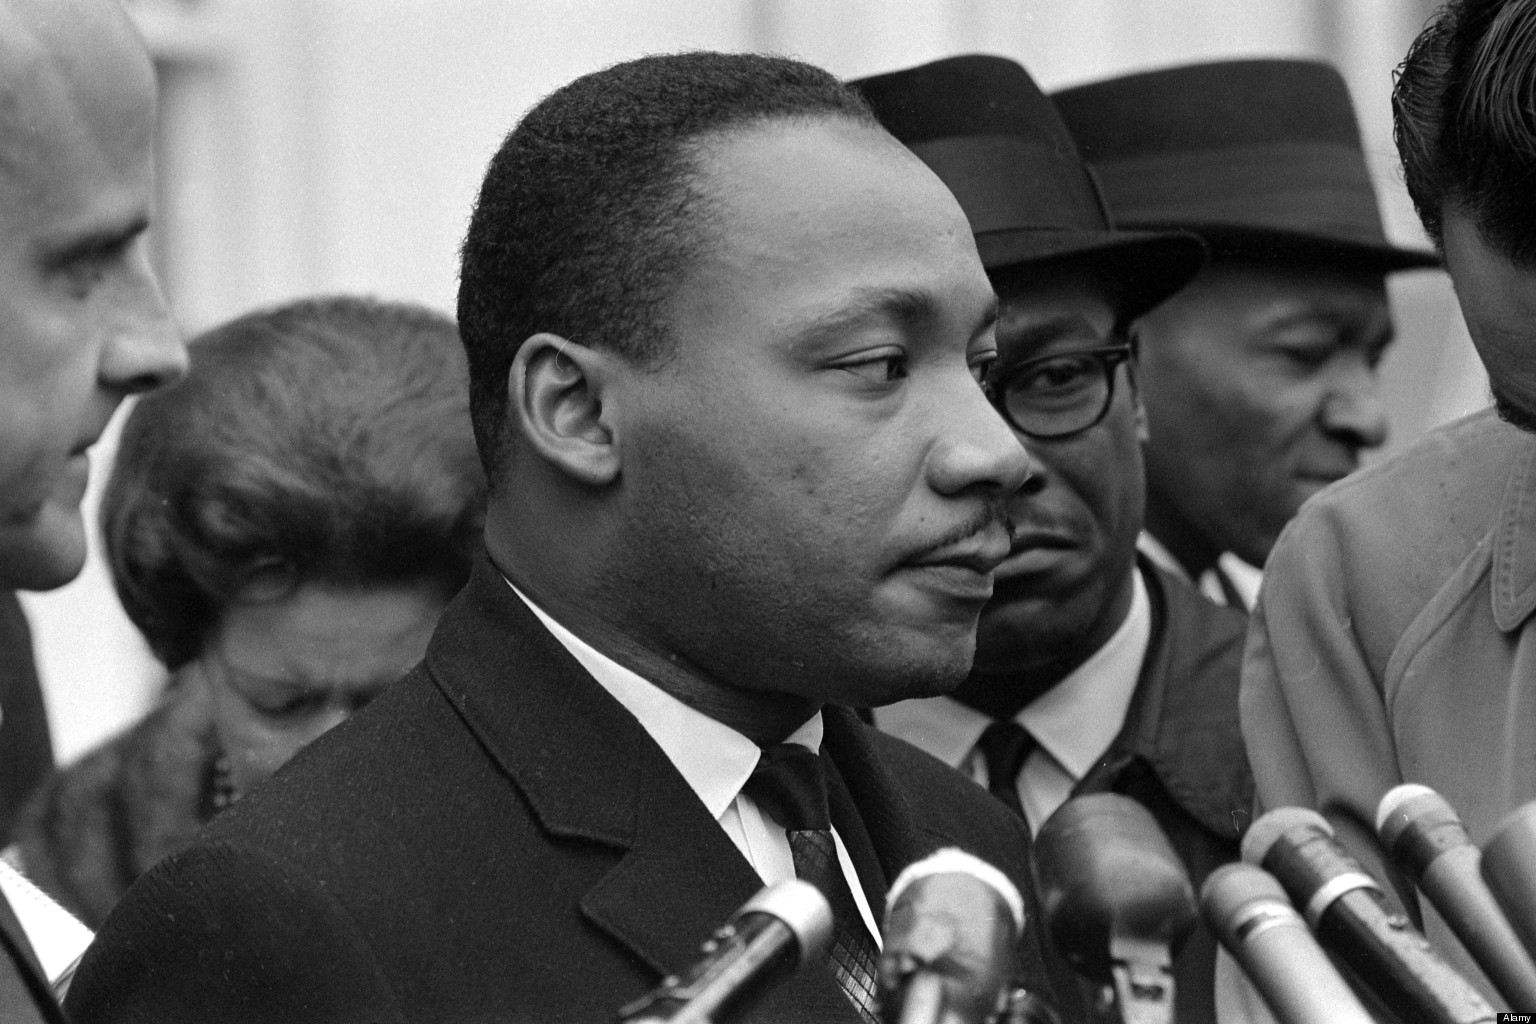 PHOTOS: Site Of MLK's Birmingham Jail Letter Gets Historical Marker